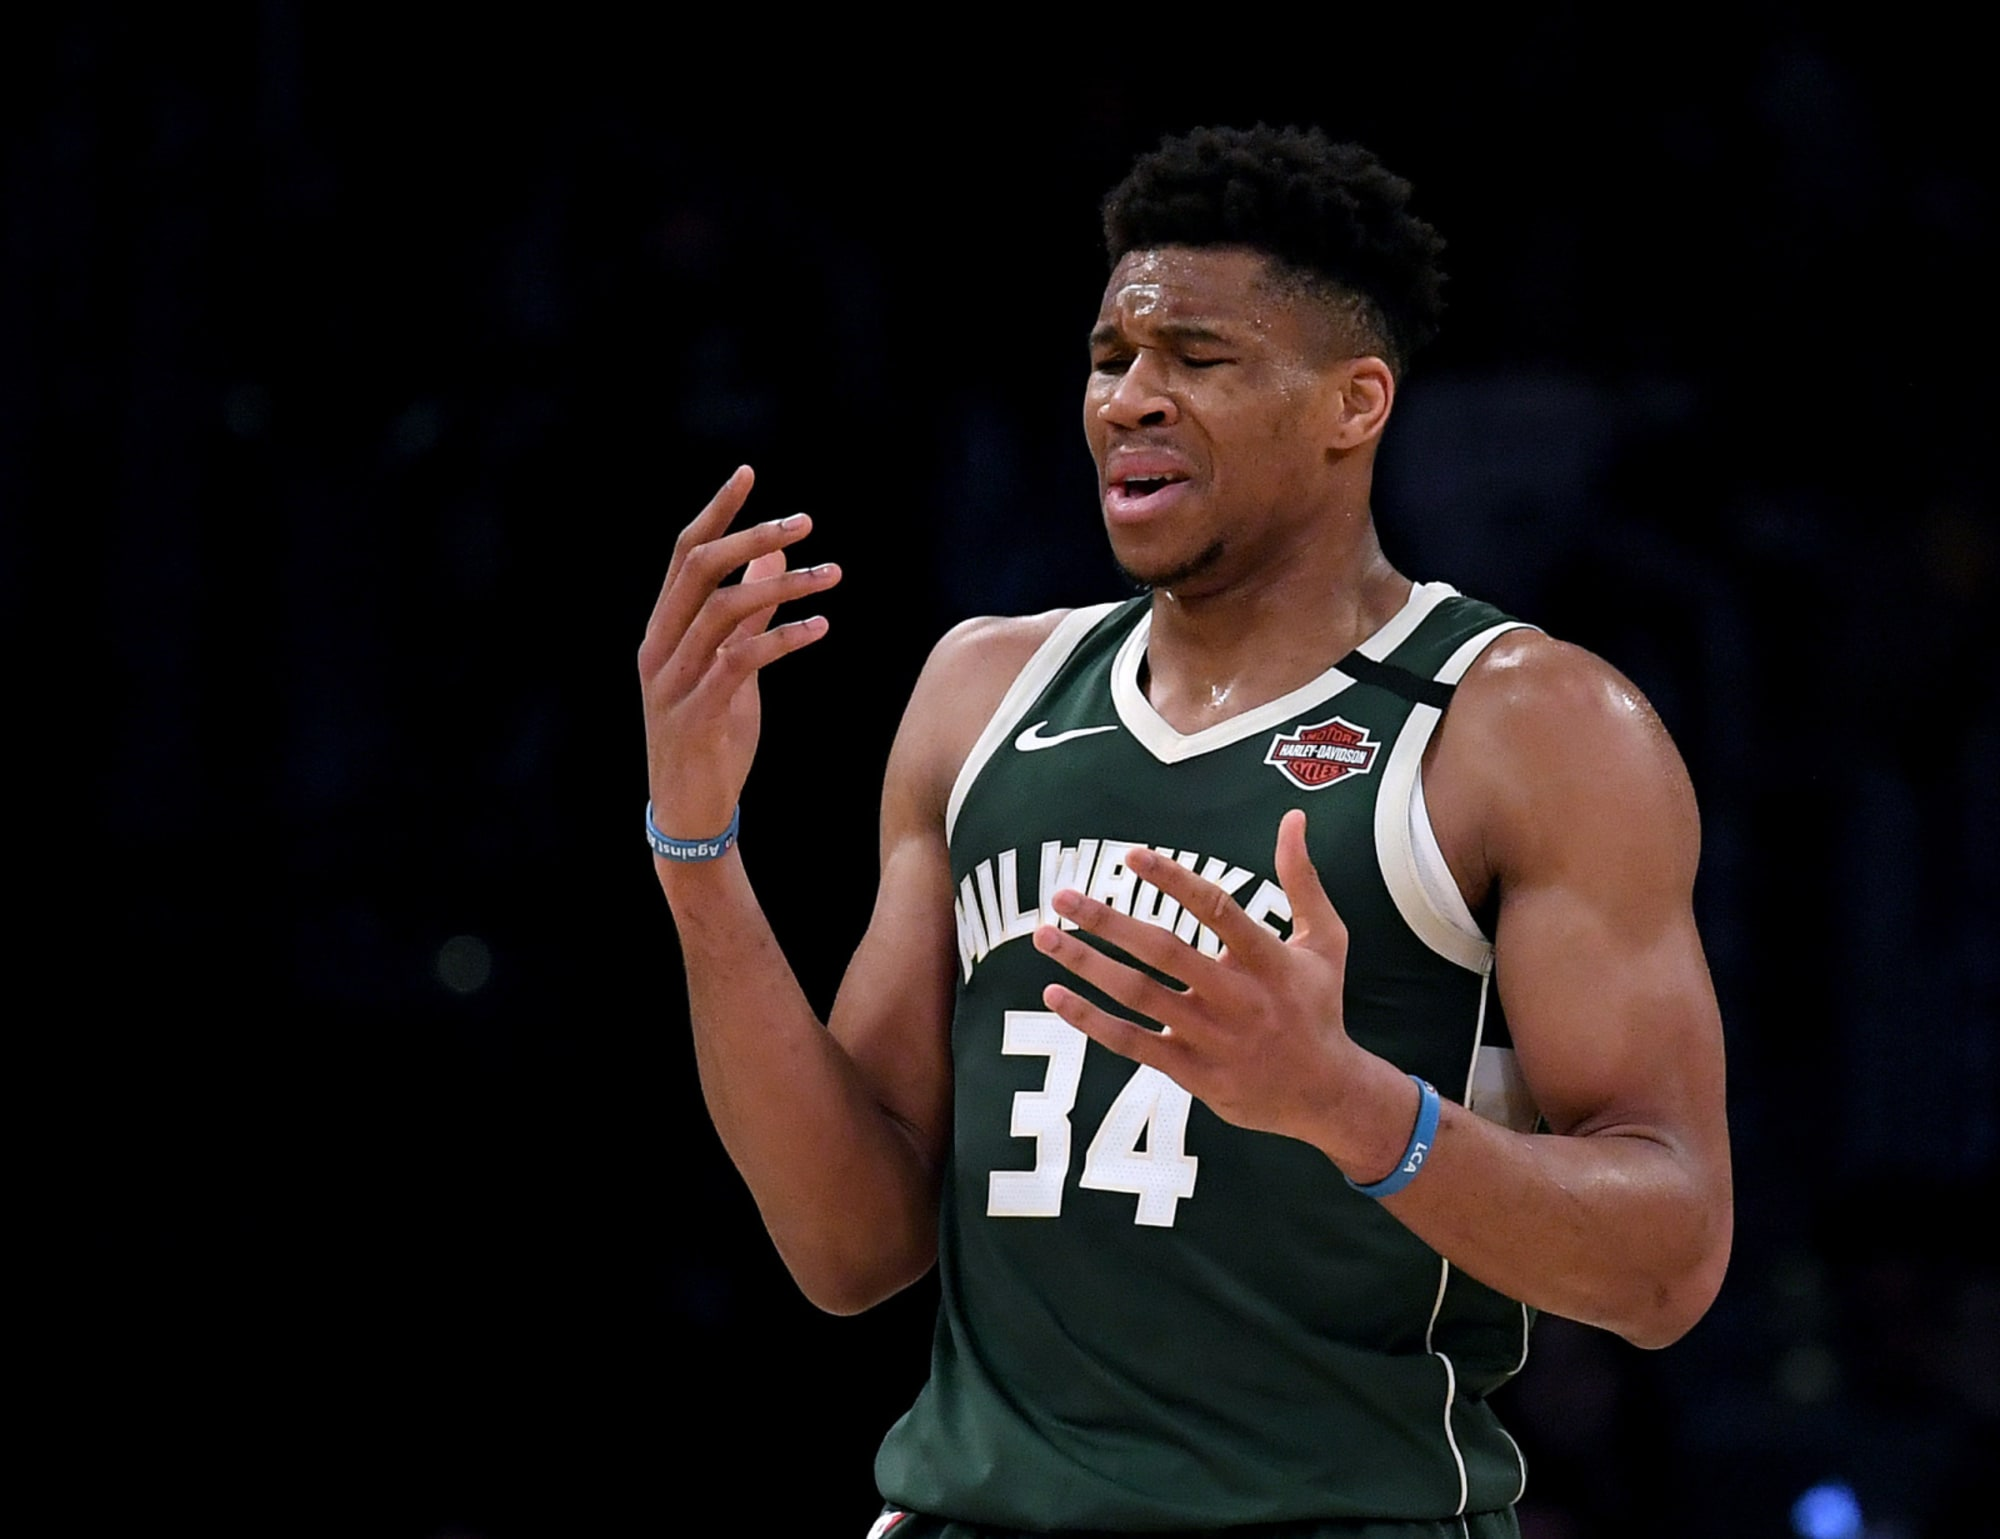 The Golden State Warriors have x-factor in race for Giannis Antetokounmpo